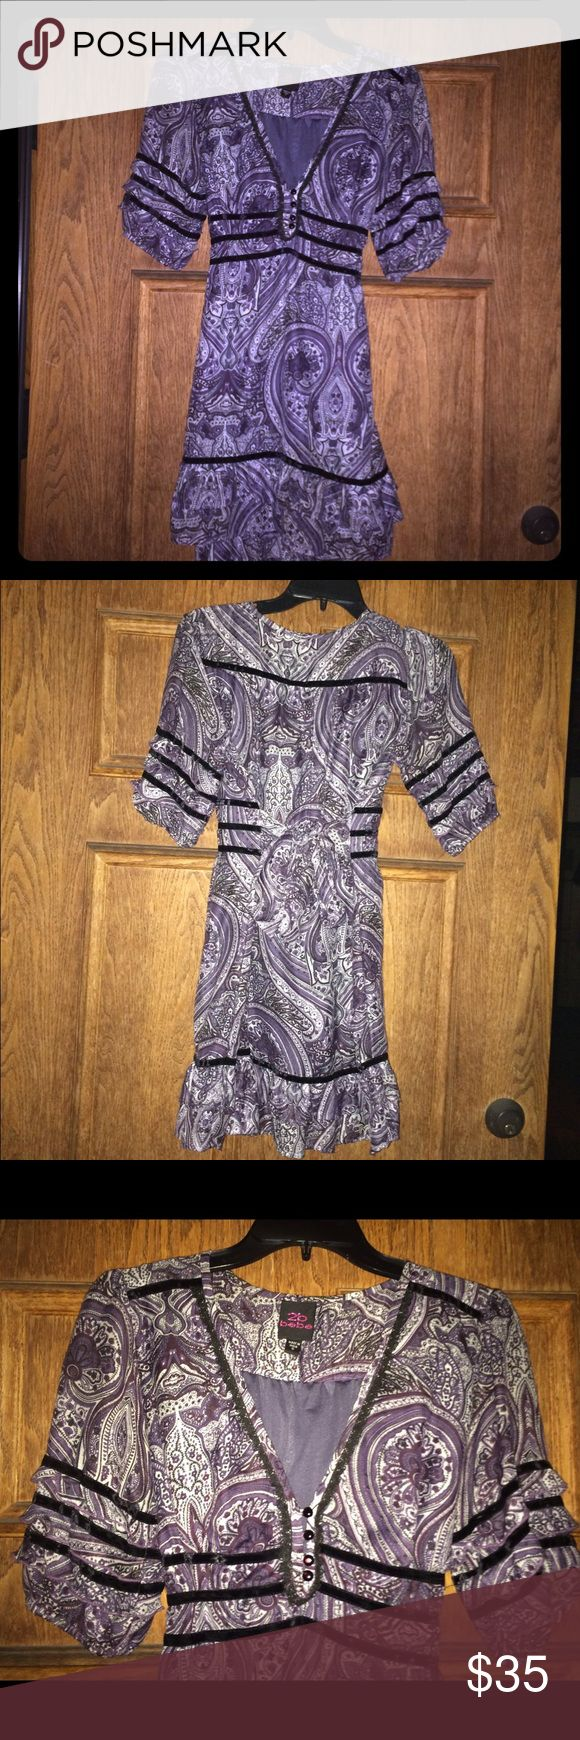 """BEBE Purple Paisley Mini Dress Tunic Size Small Bebe Mini Dress Tunic. Soft polyester fully lined with form flattering tie in back. About 30"""" long - it's just barely a mini dress on me at 5'3"""" - would be a tunic on anyone taller. Lace trim around neckline and velvet stripes around skirt hem, waist and sleeves. Ruffles on sleeves and hem. 4 buttons at bust. Light pilling on exterior but due to pattern can't see it. Cozy and unique. bebe Dresses Mini"""